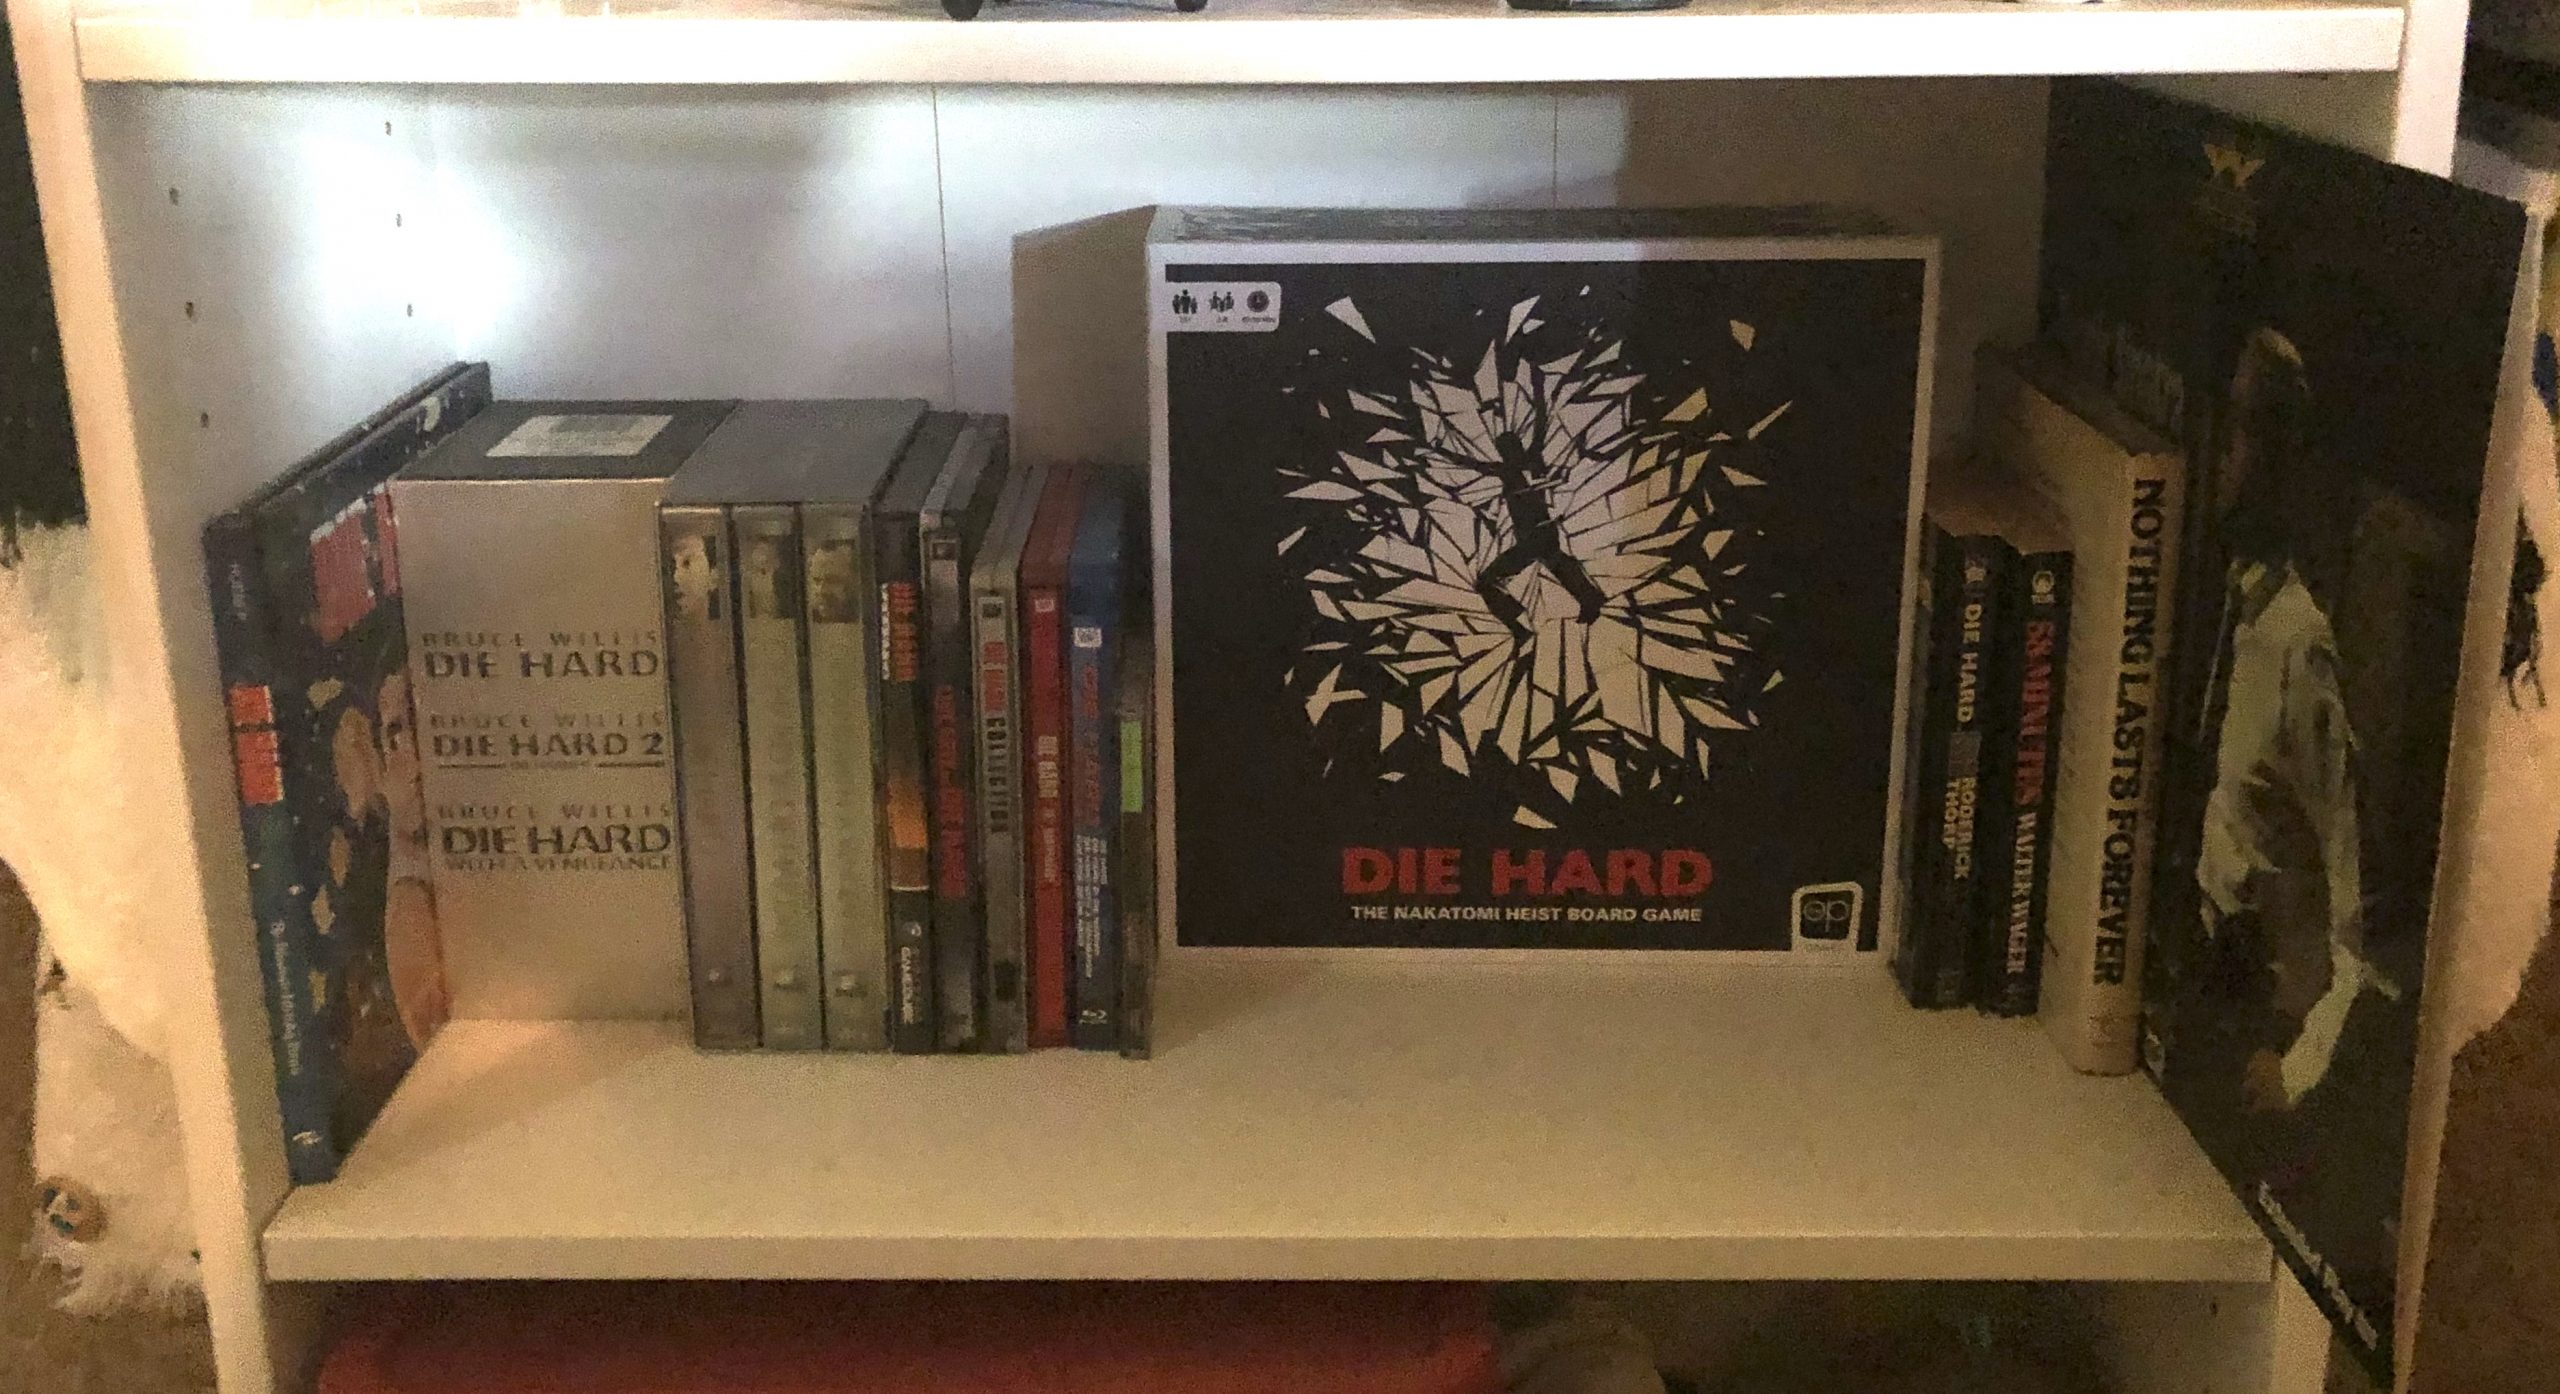 Die Hard Shelf